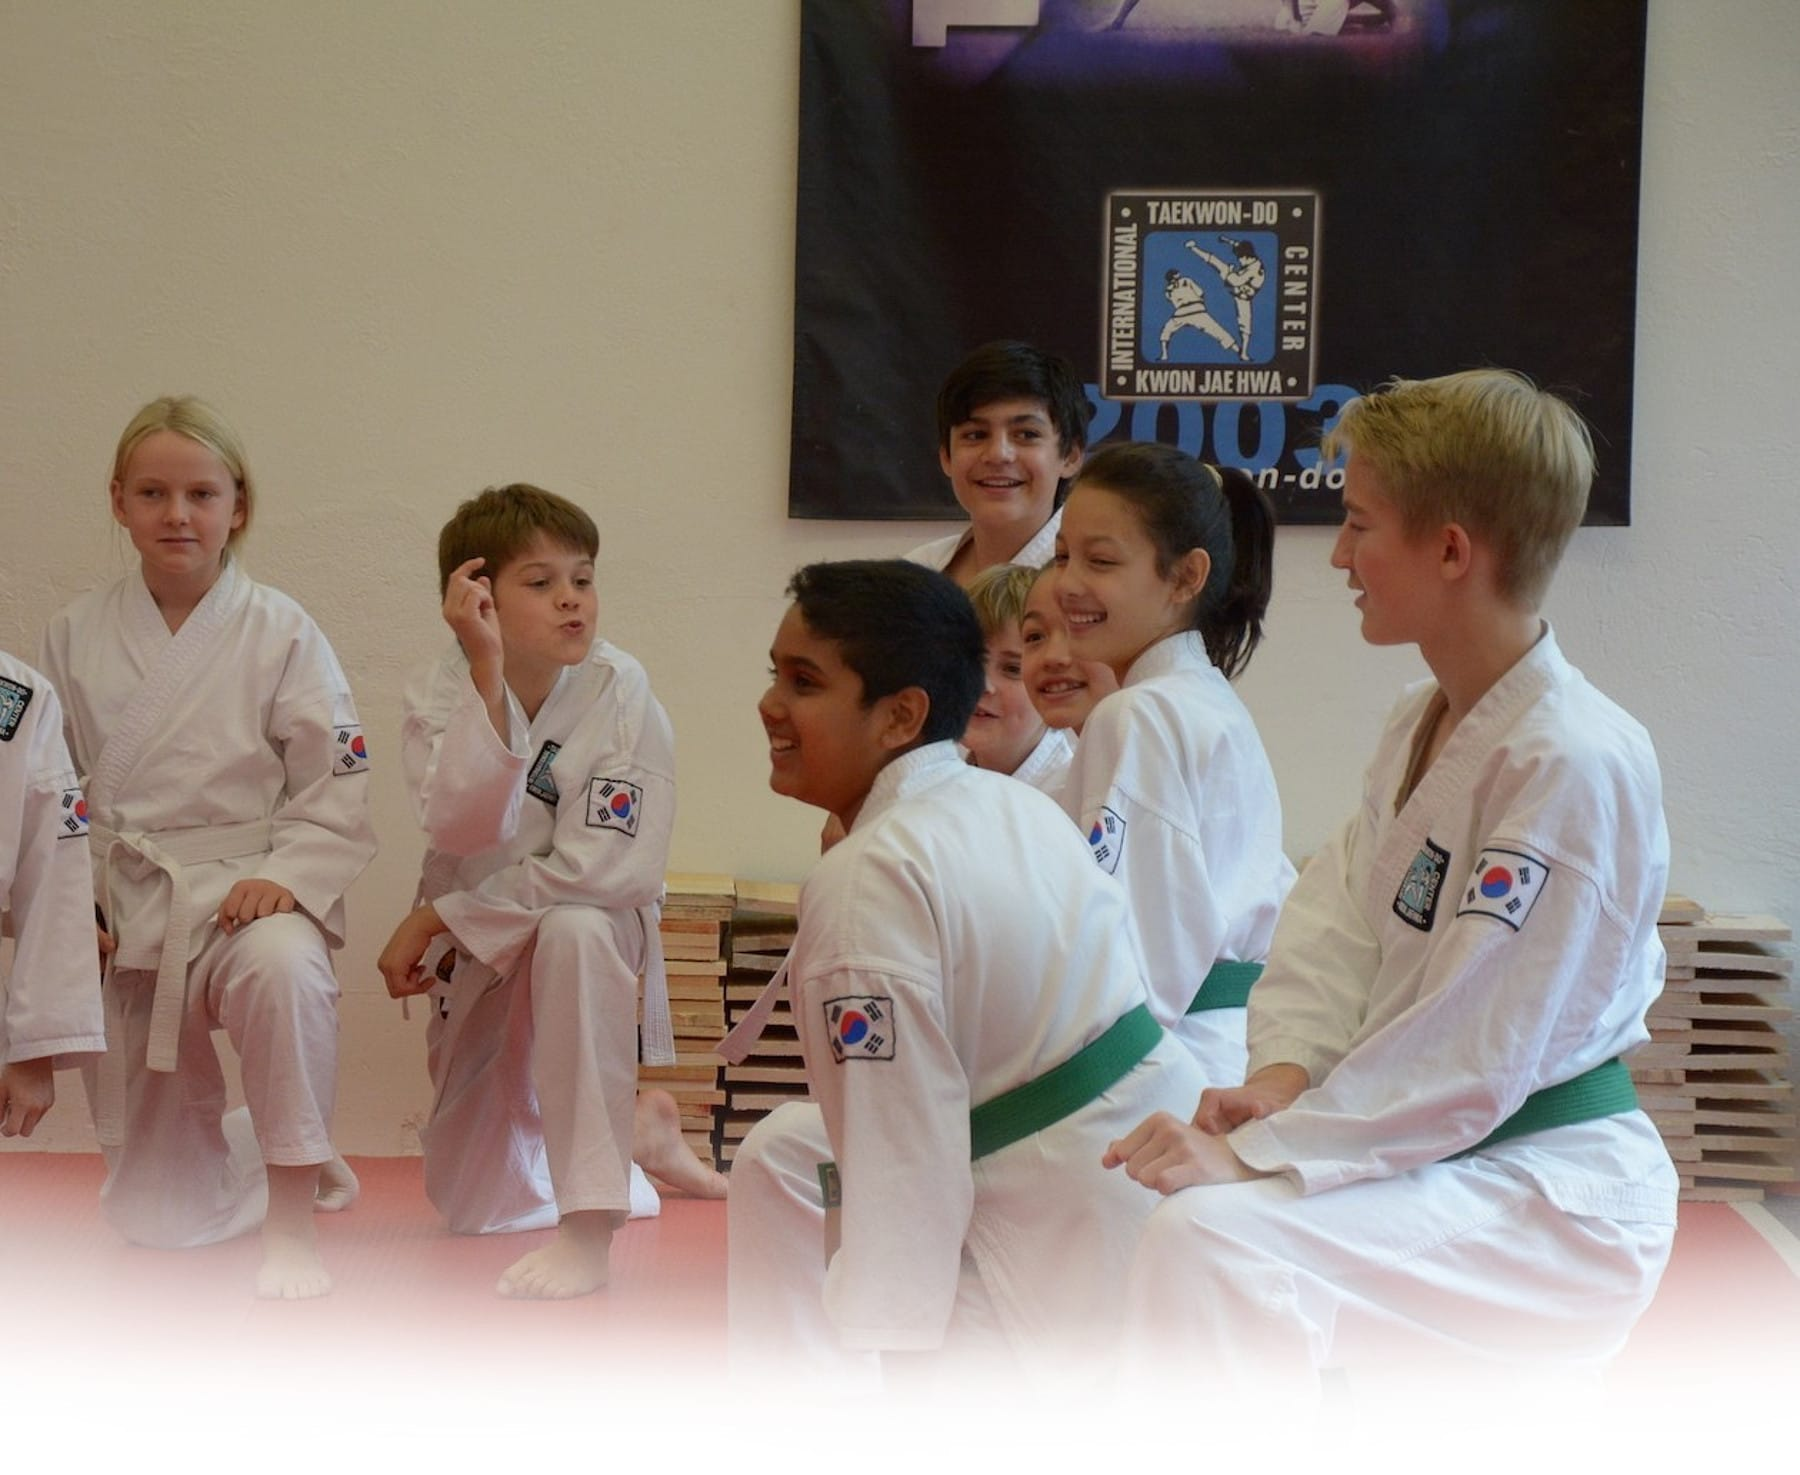 HG_taekwon-do-terranova-kinder